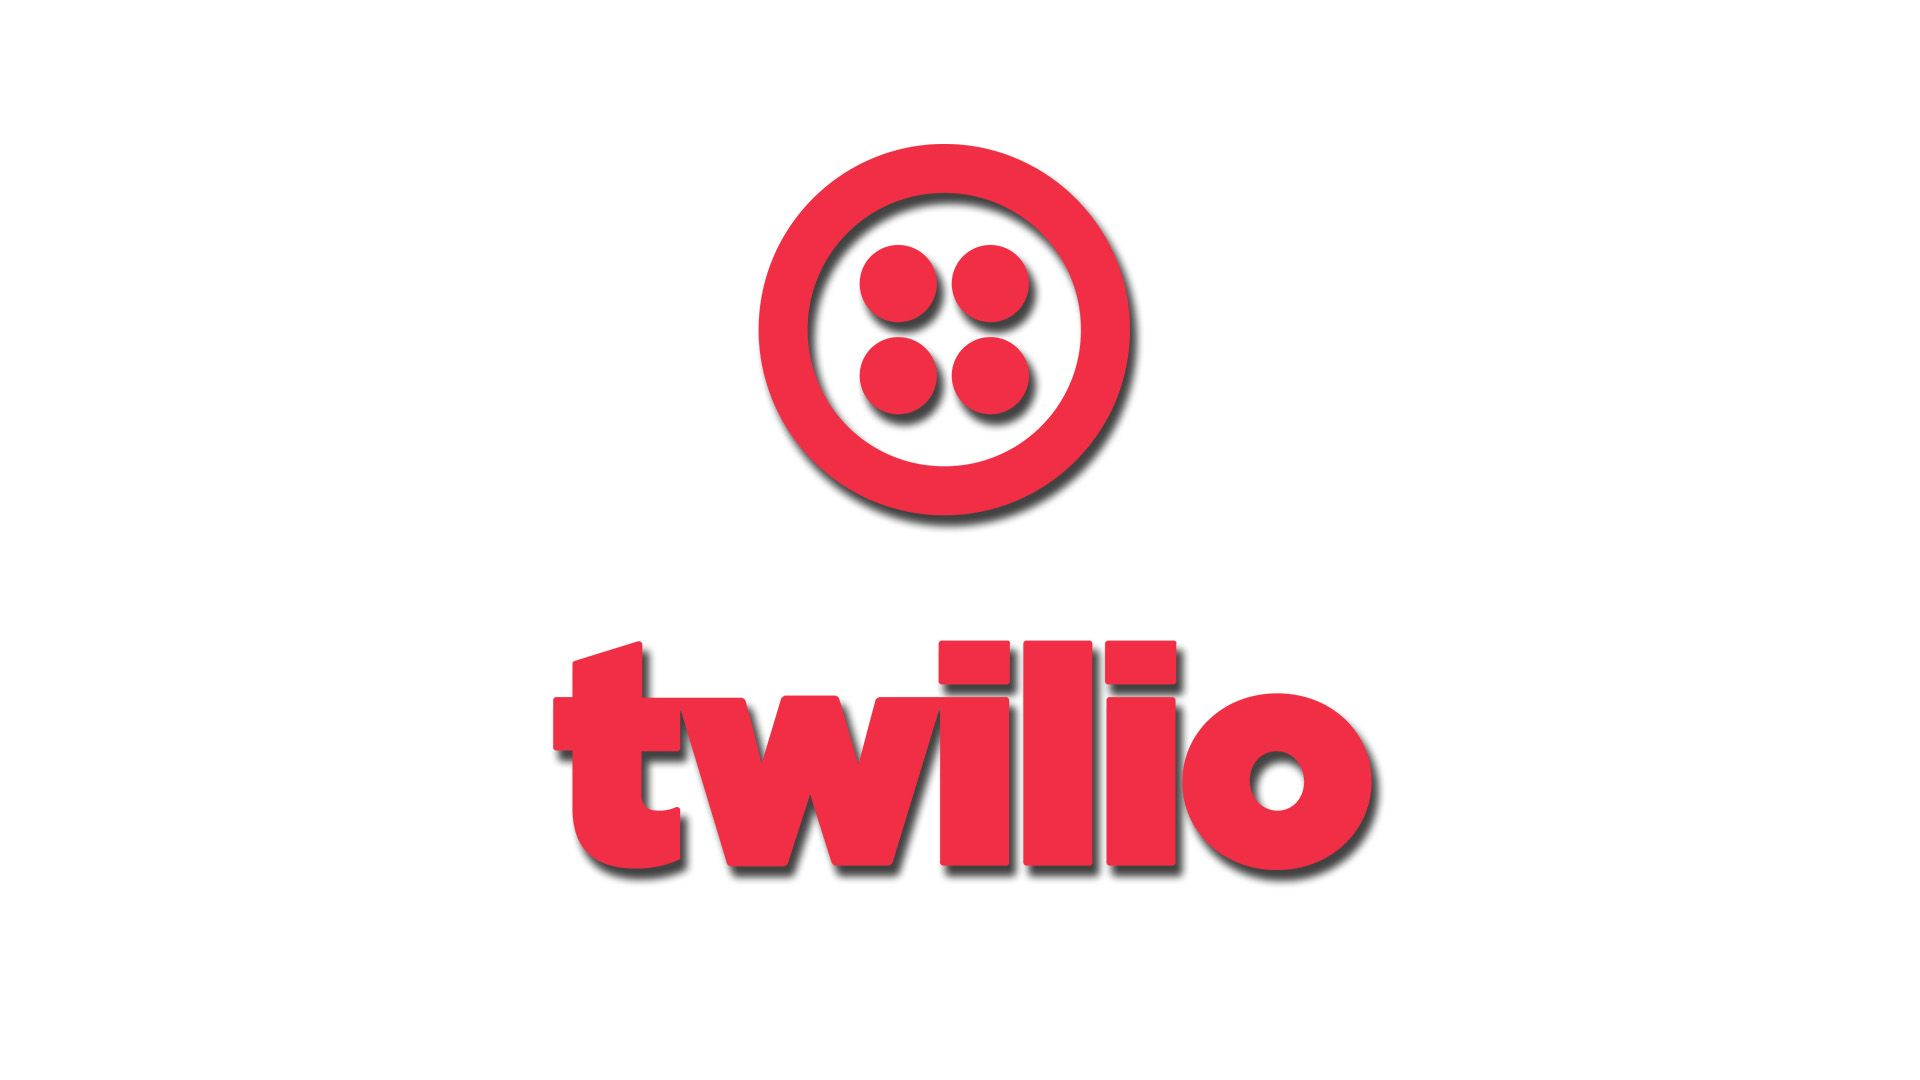 De 0 à 2,94 milliards de dollars (Twilio) #GrowthHacking #WEbMarketing #FormationGrowthHacking #CentreDeFormationFrance #TunnelAARRR #AARRR #SocialMedia #CommunityManagement #SEO #Twilio #acquisition #startup